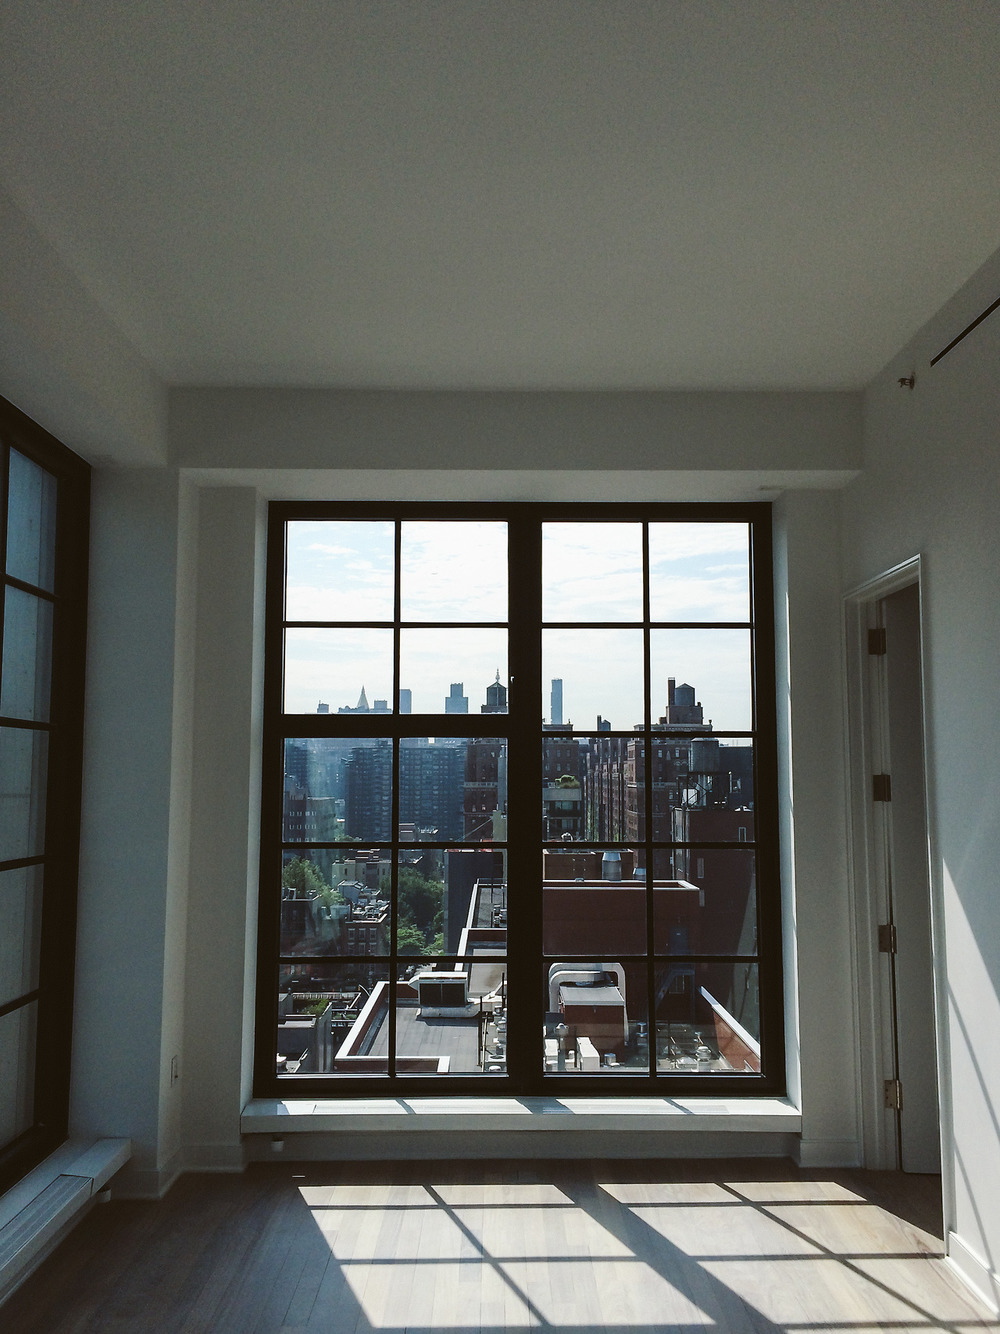 Apartment with big window with a view ITCHBAN.com